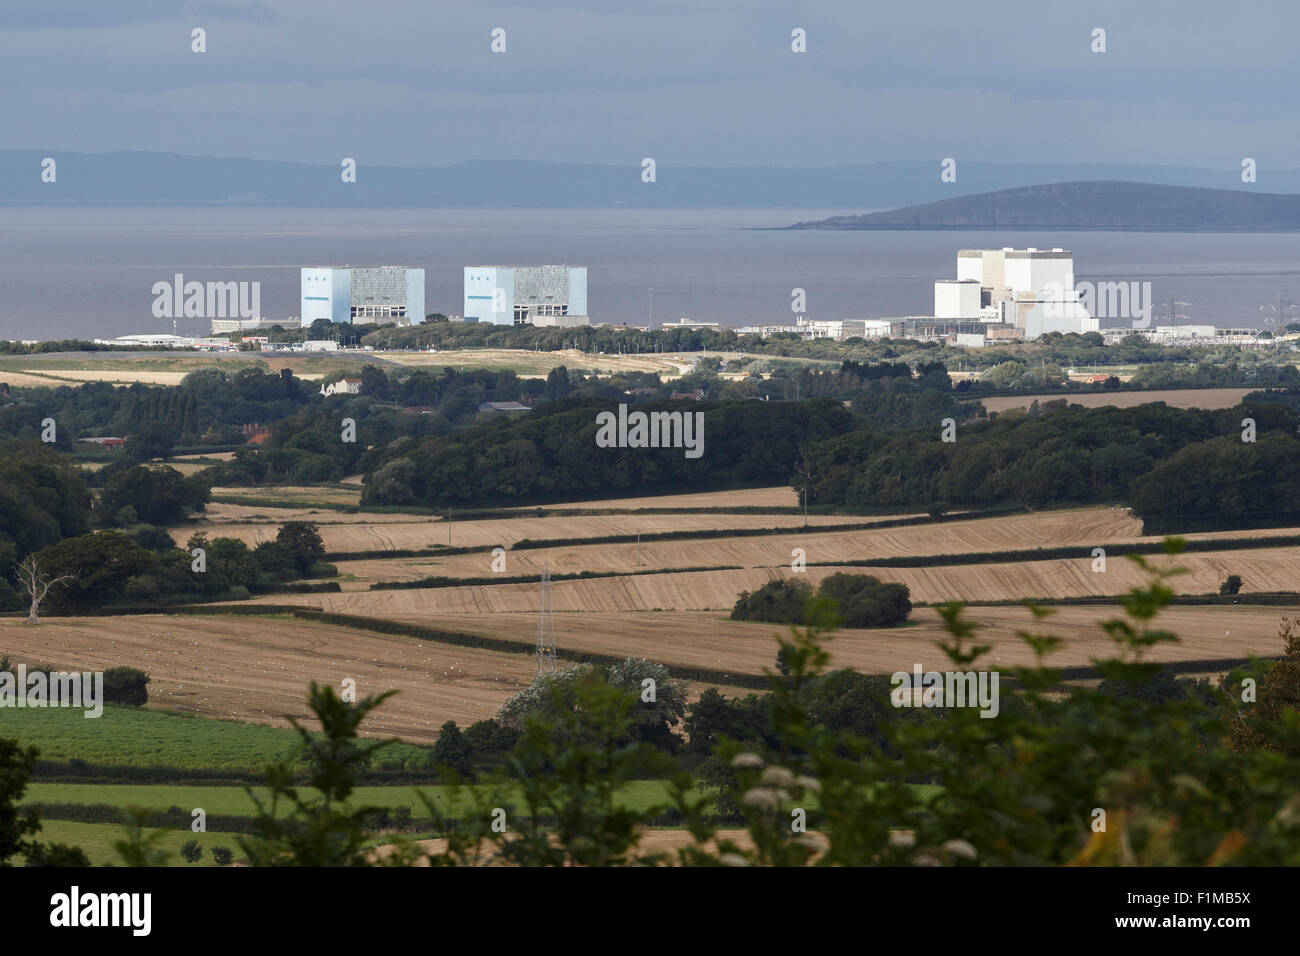 Hinkely Point nuclear power plant. A station to the left, B station to the right. Viewed from the Quantock Hills. - Stock Image